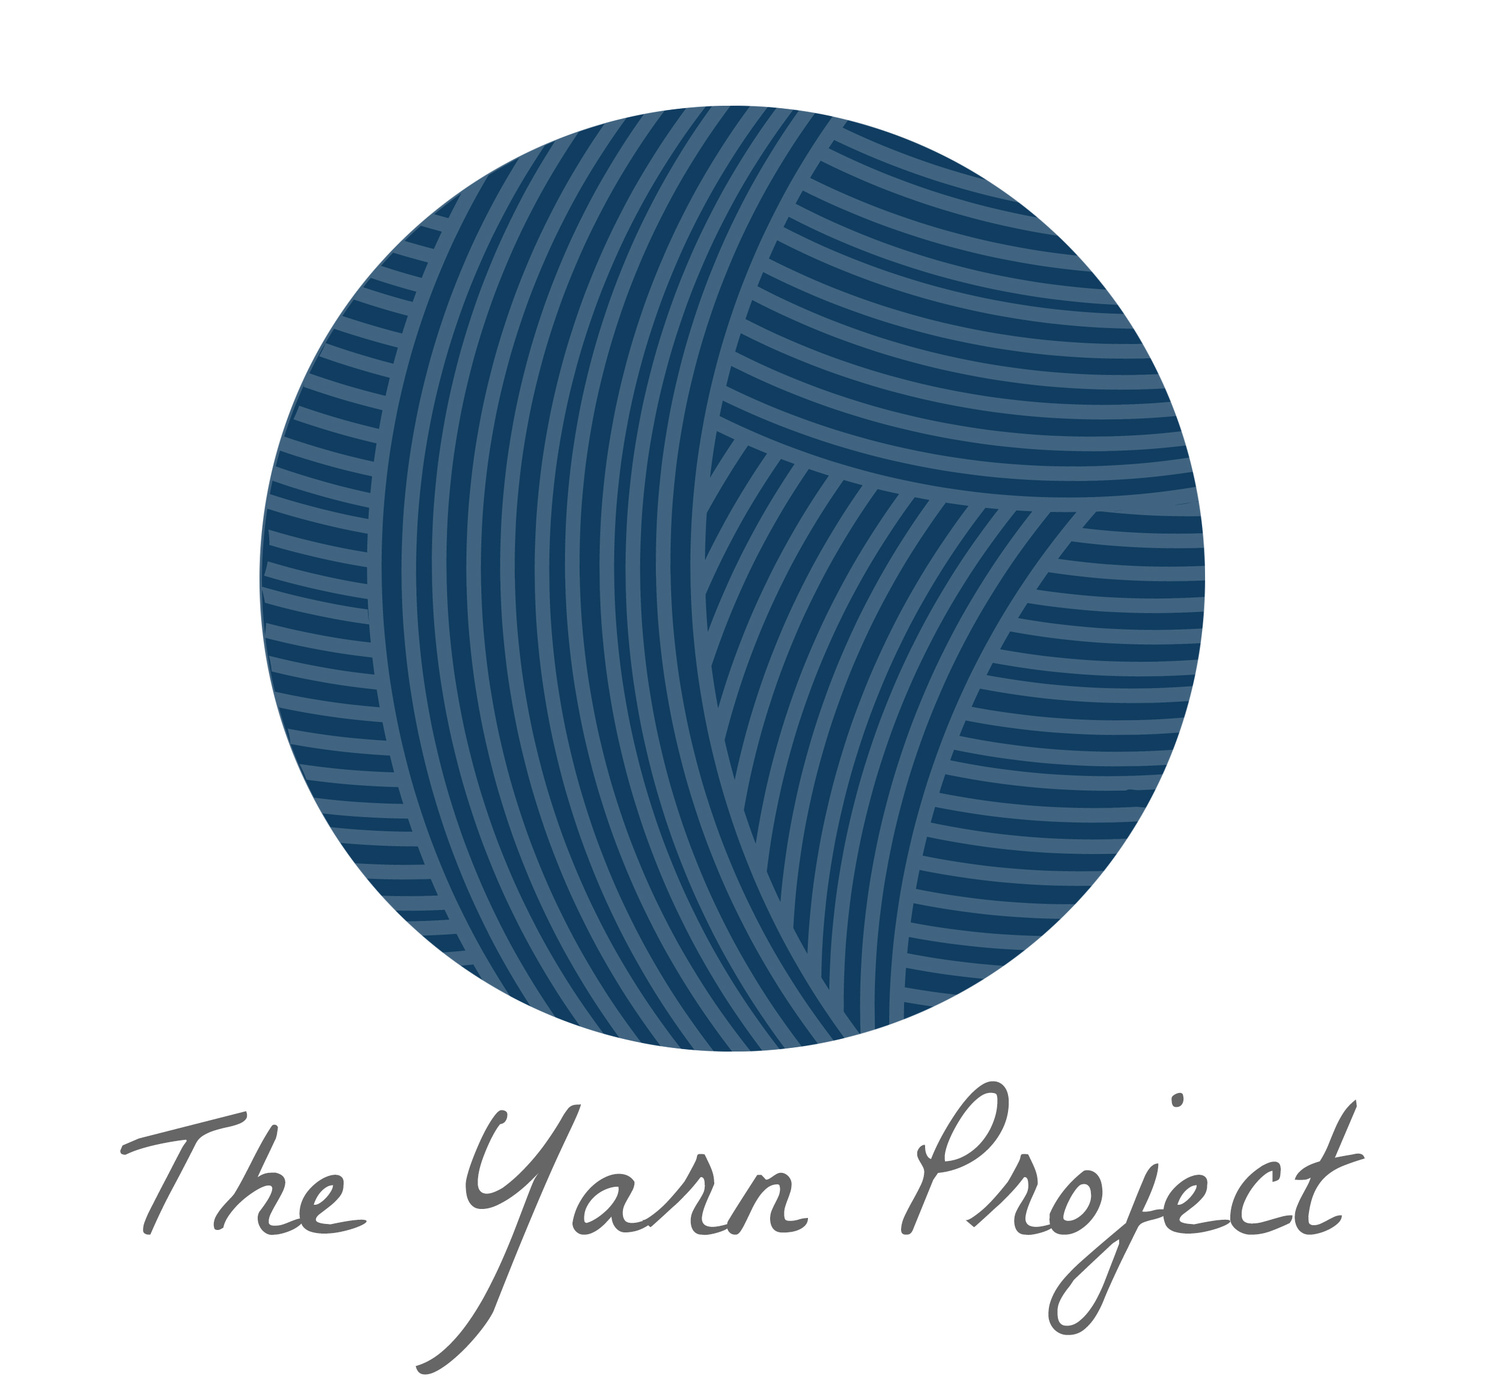 The Yarn Project